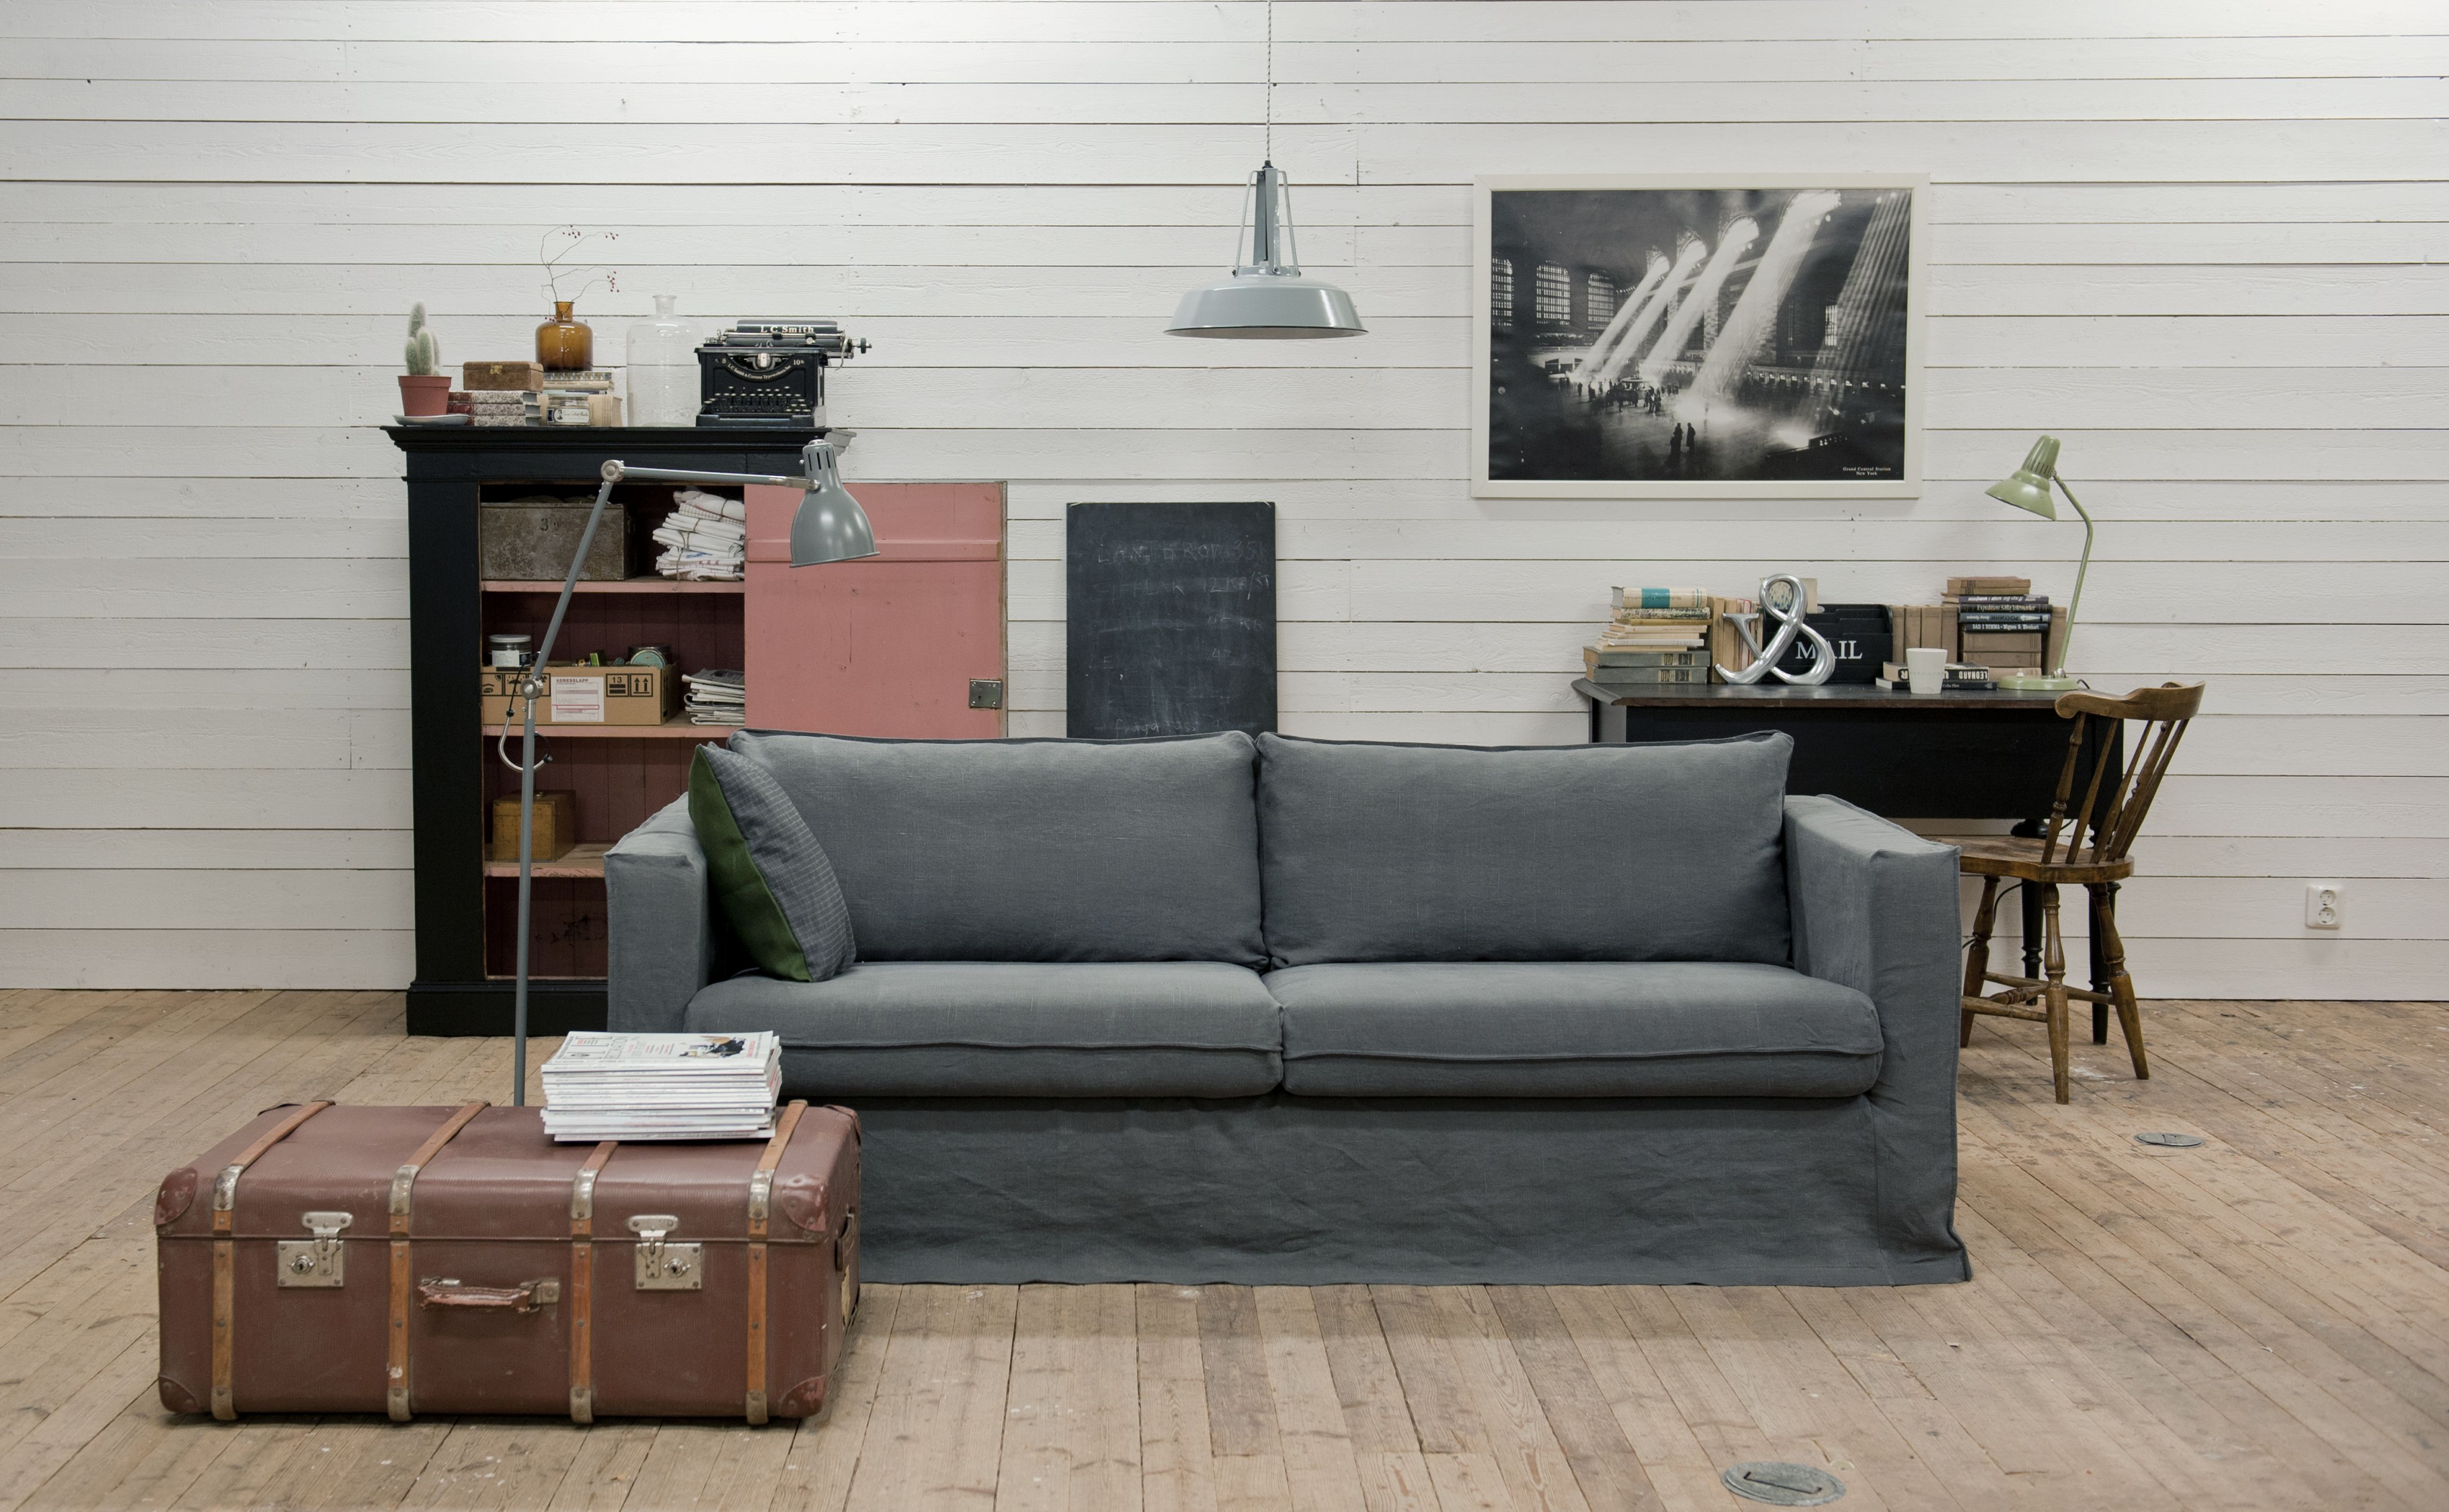 Ikea Karlstad Leren Bank.Karlstad 3 Seater Sofa Cover Loose Fit Sofa Covers 3 Seater